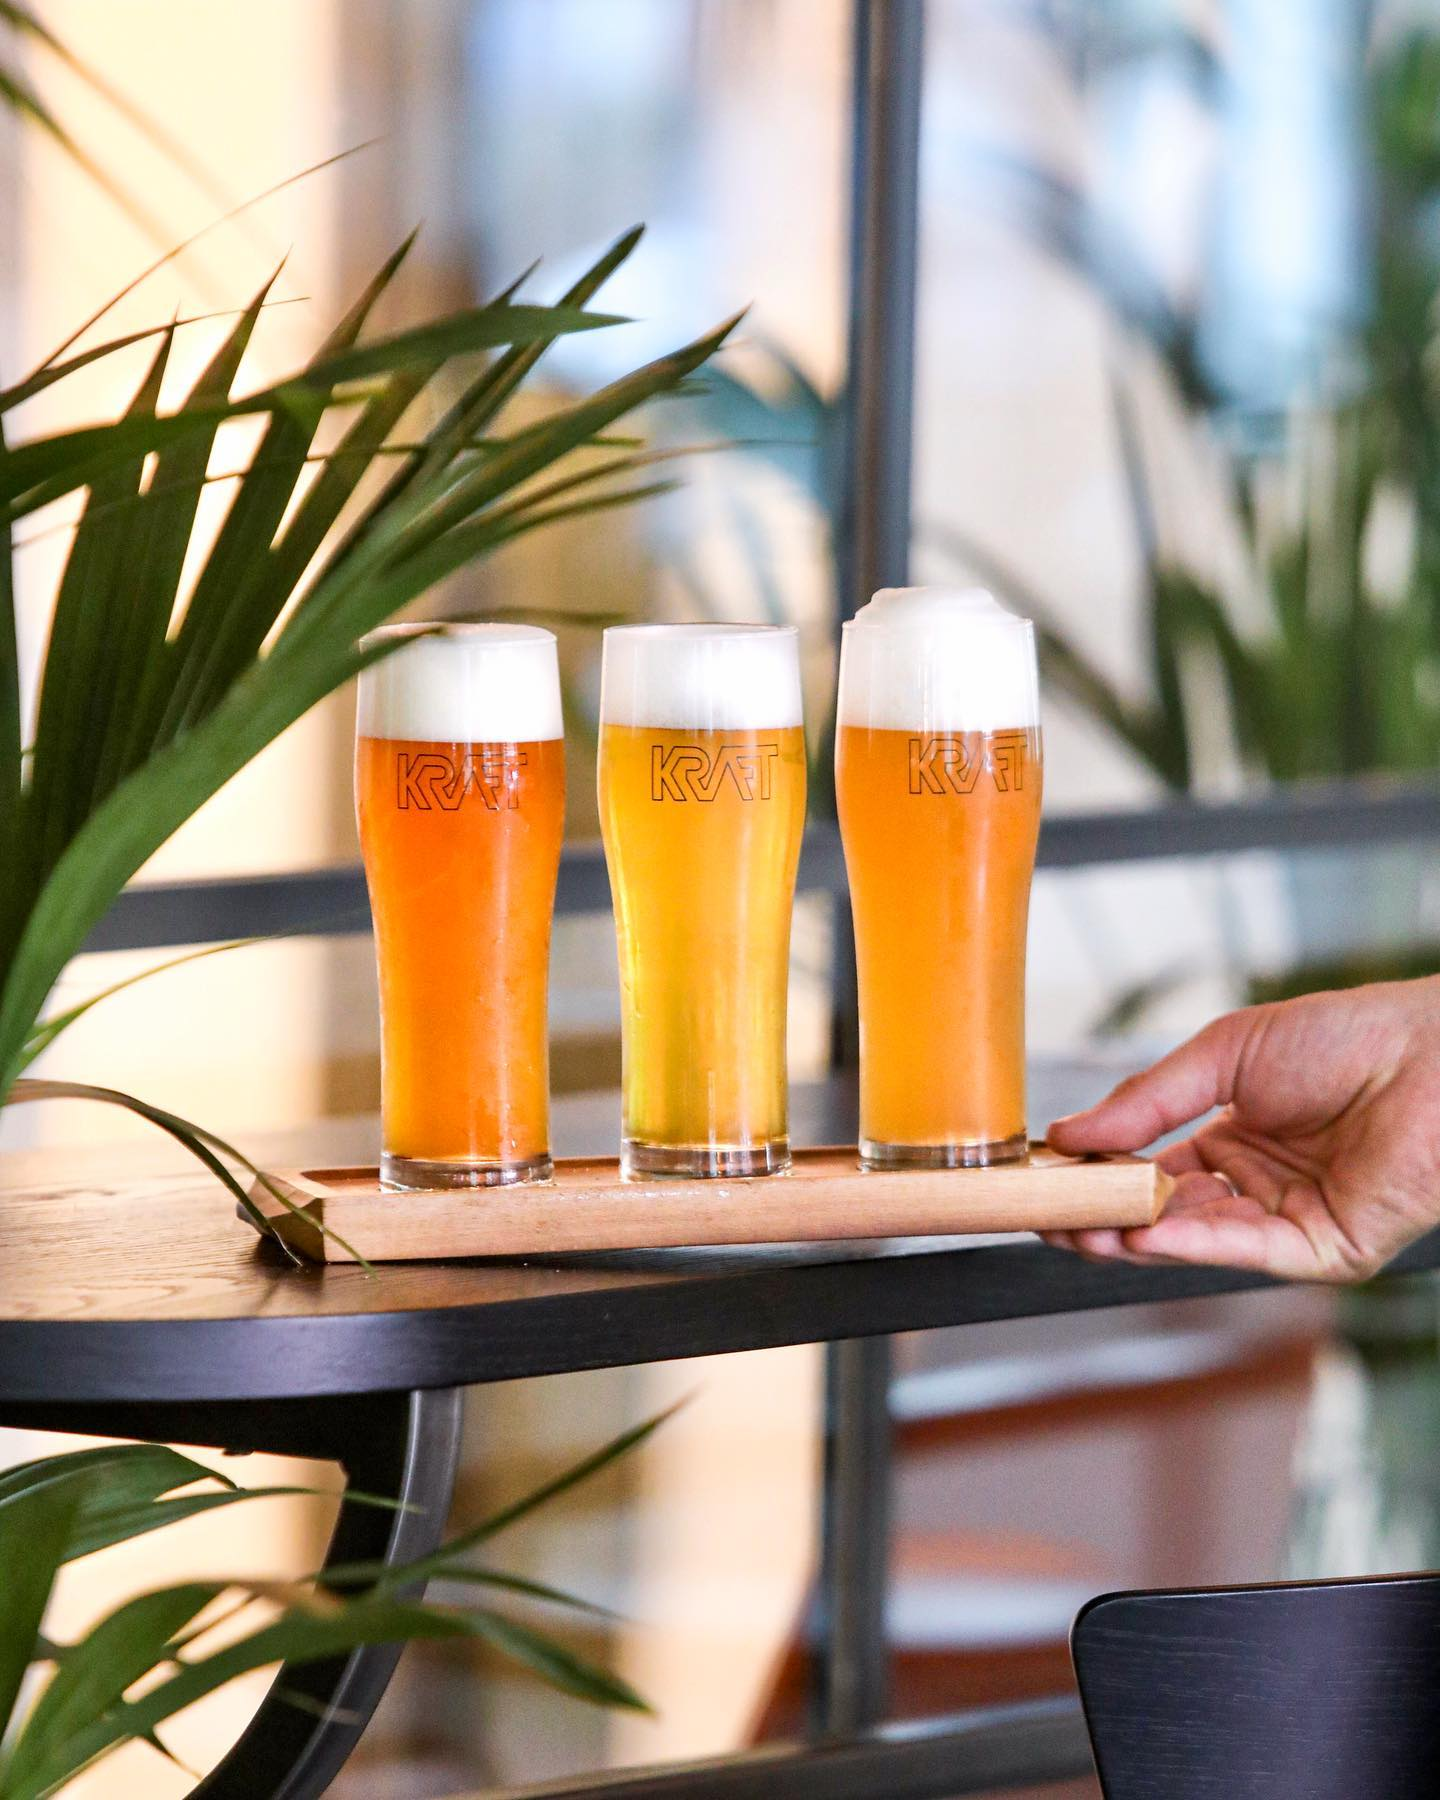 Yees, beer flights are available at the bar & restaurant. Try 3 half pints of our beers brewed on site for £9 🍺🍺🍺